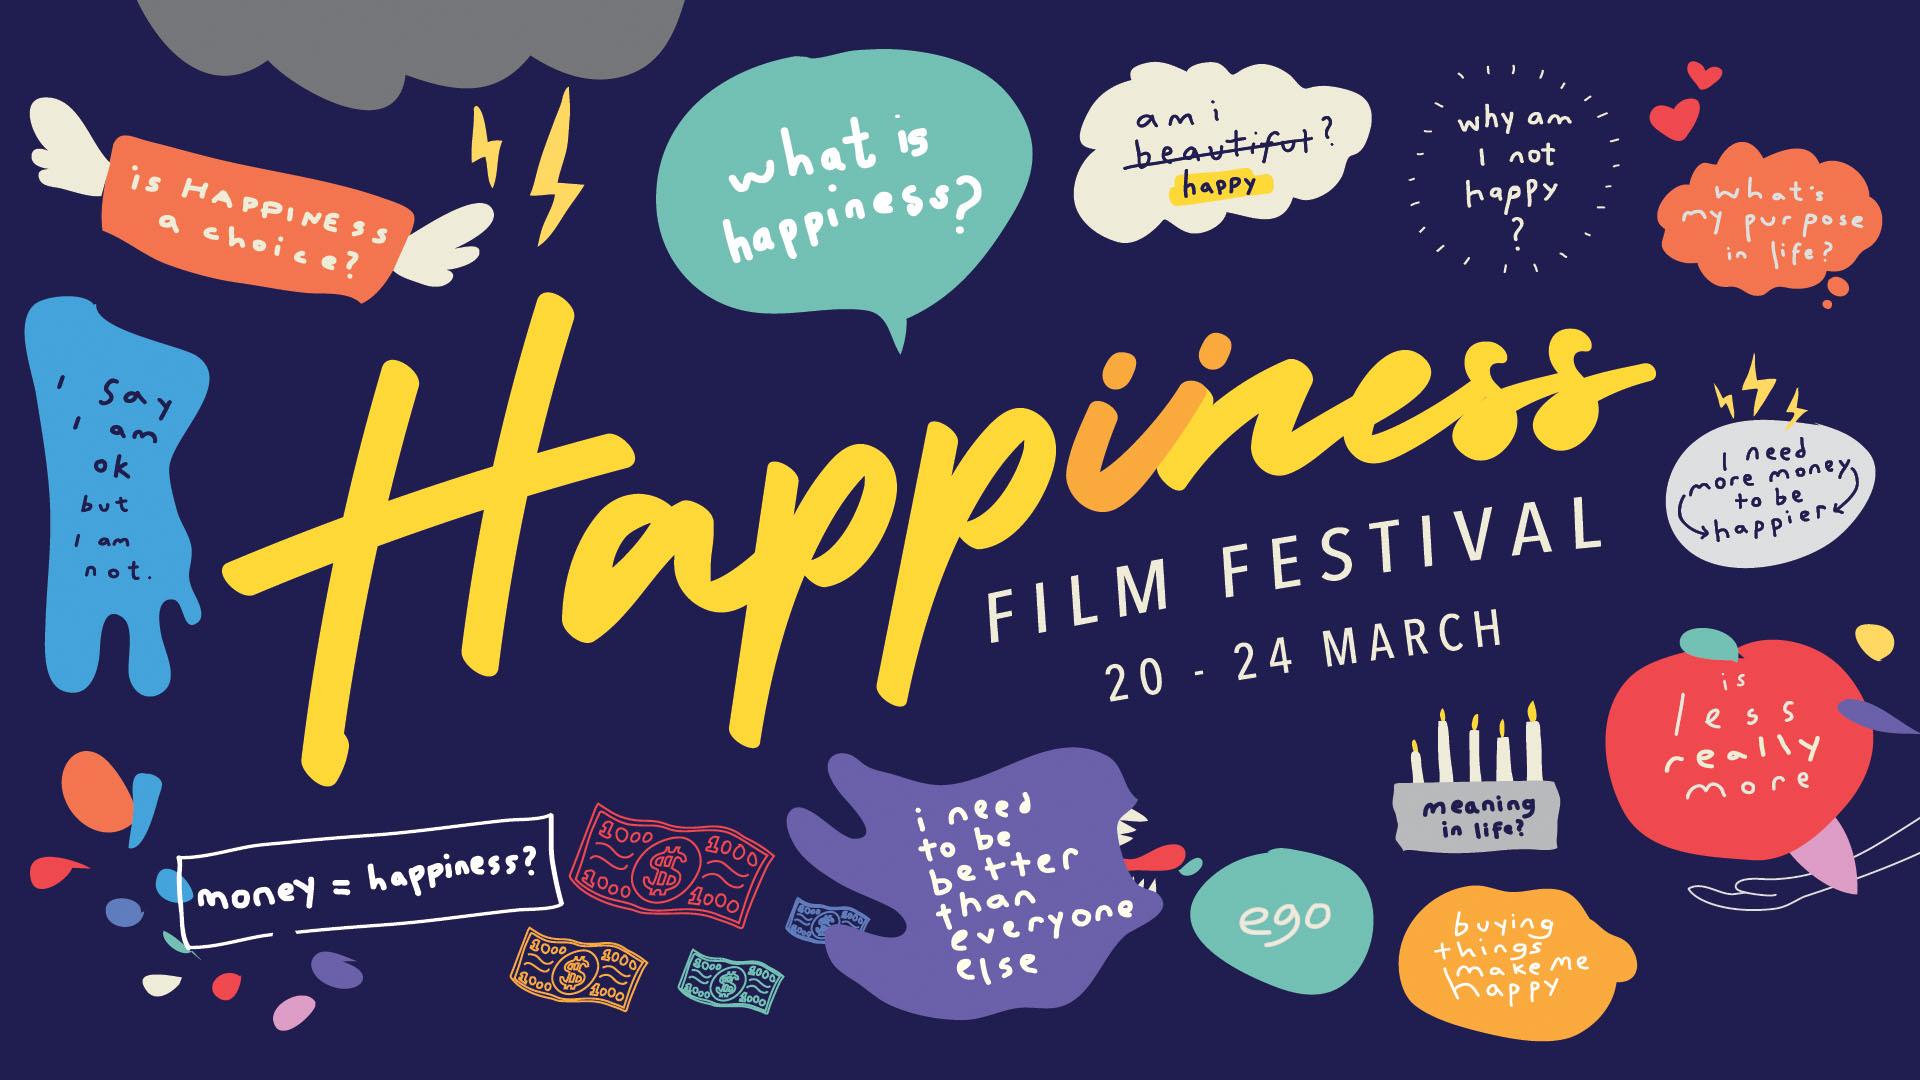 happff-1920_0_16473000_1551668663 Event - Happiness Film Festival